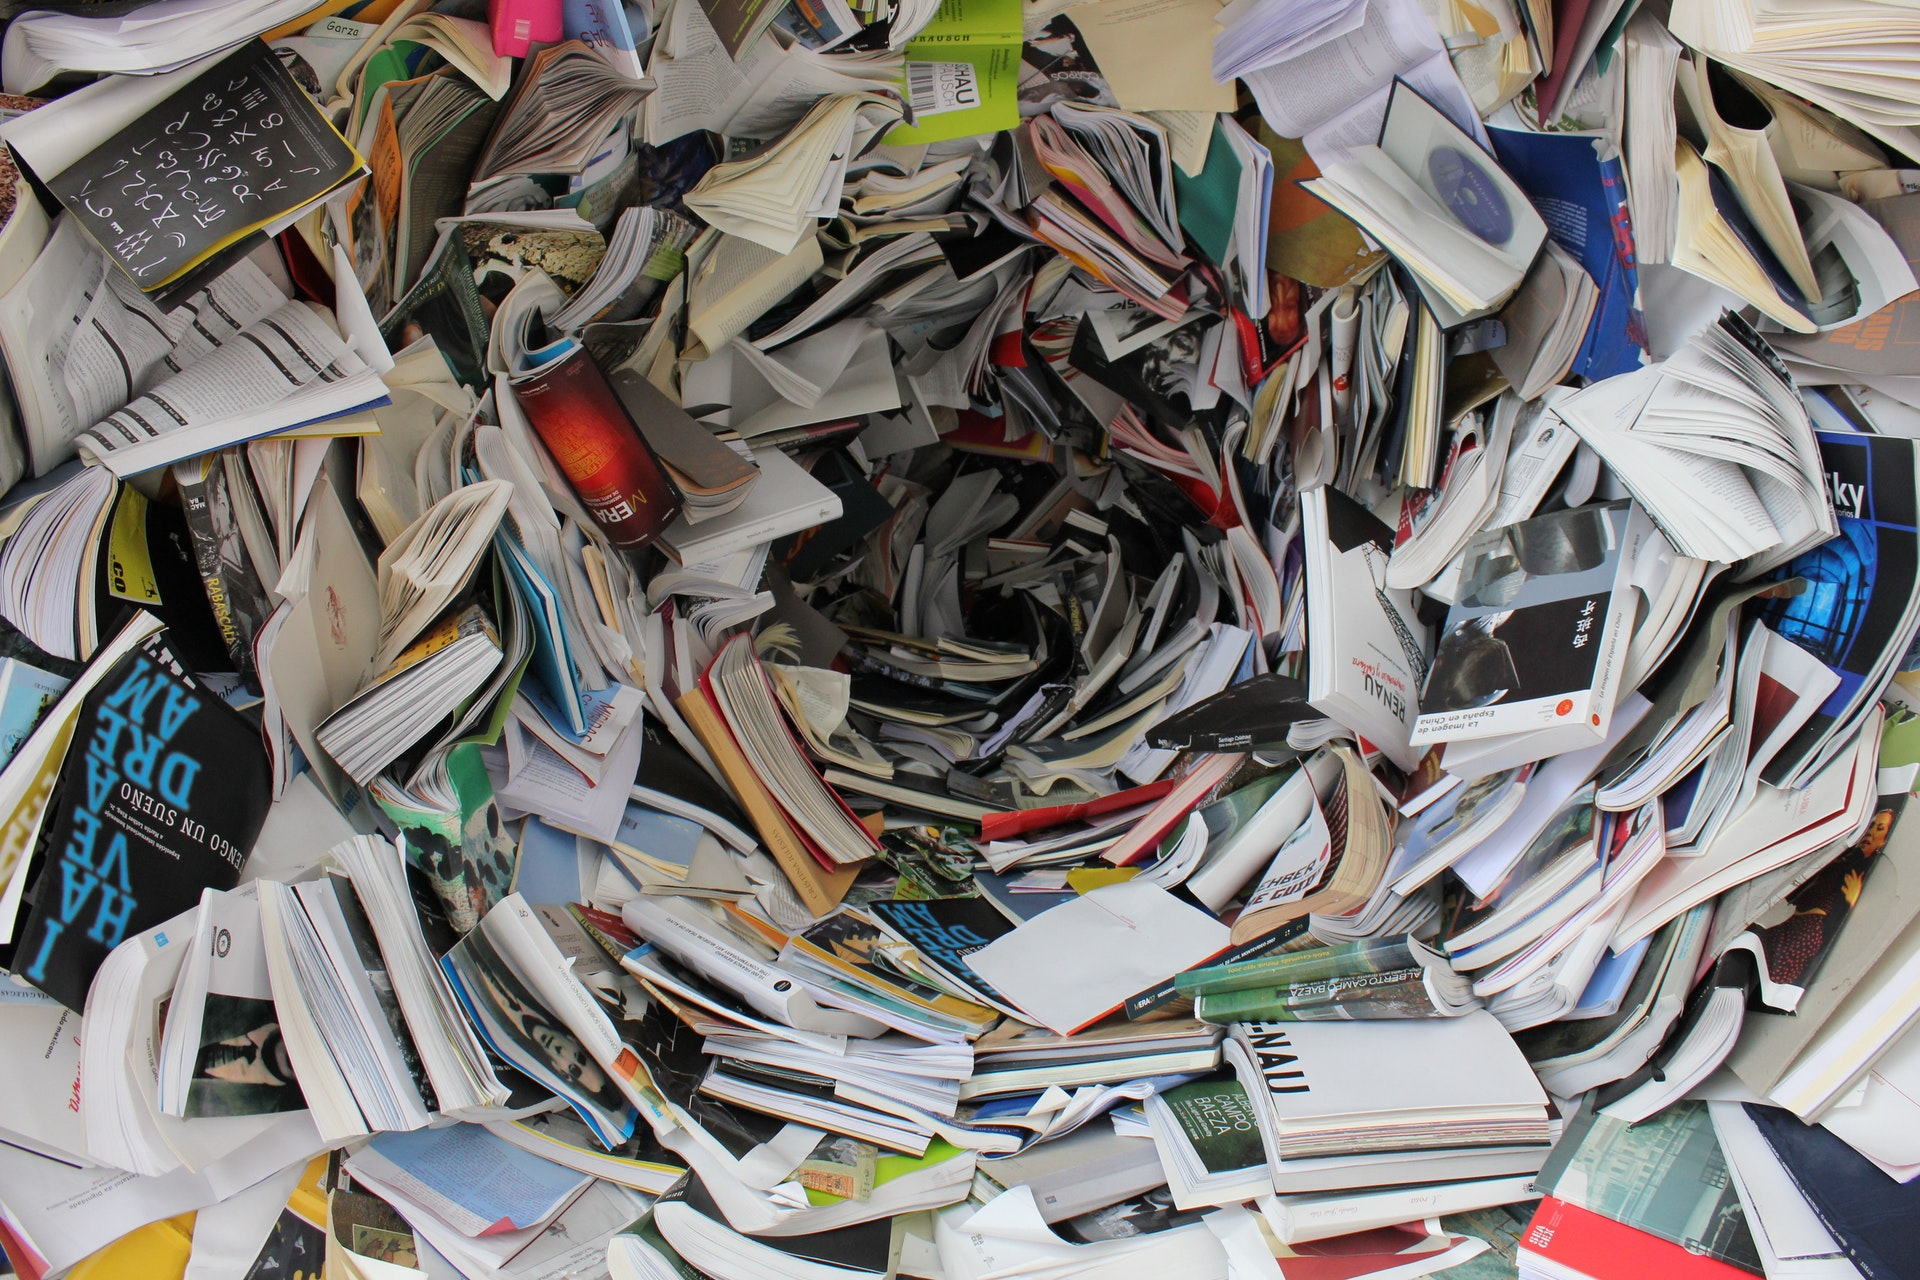 A pile of novels swirling, depicting that many books make it difficult to distinguis between a good corporate thriller and a bad one